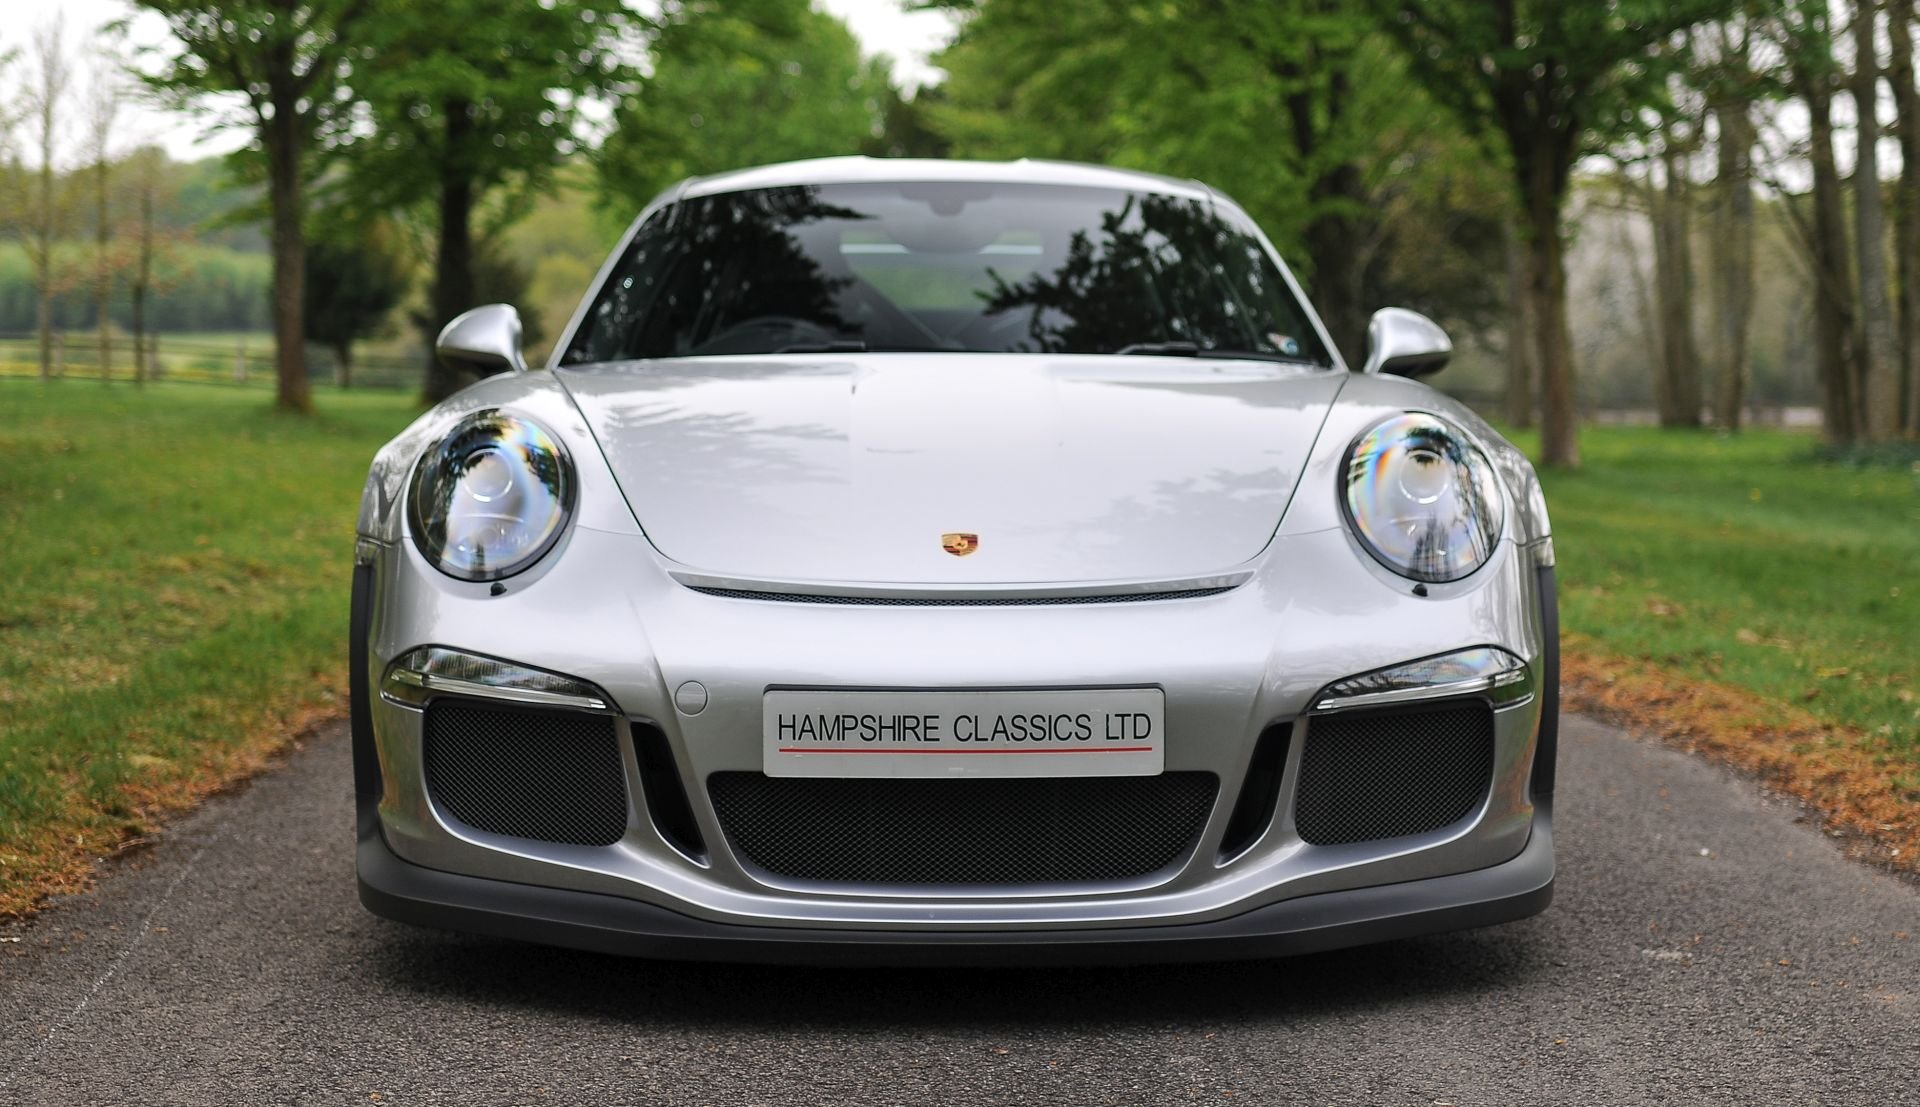 2016 Porsche 991 GT3 RS - Only 2268 miles SOLD (picture 2 of 6)